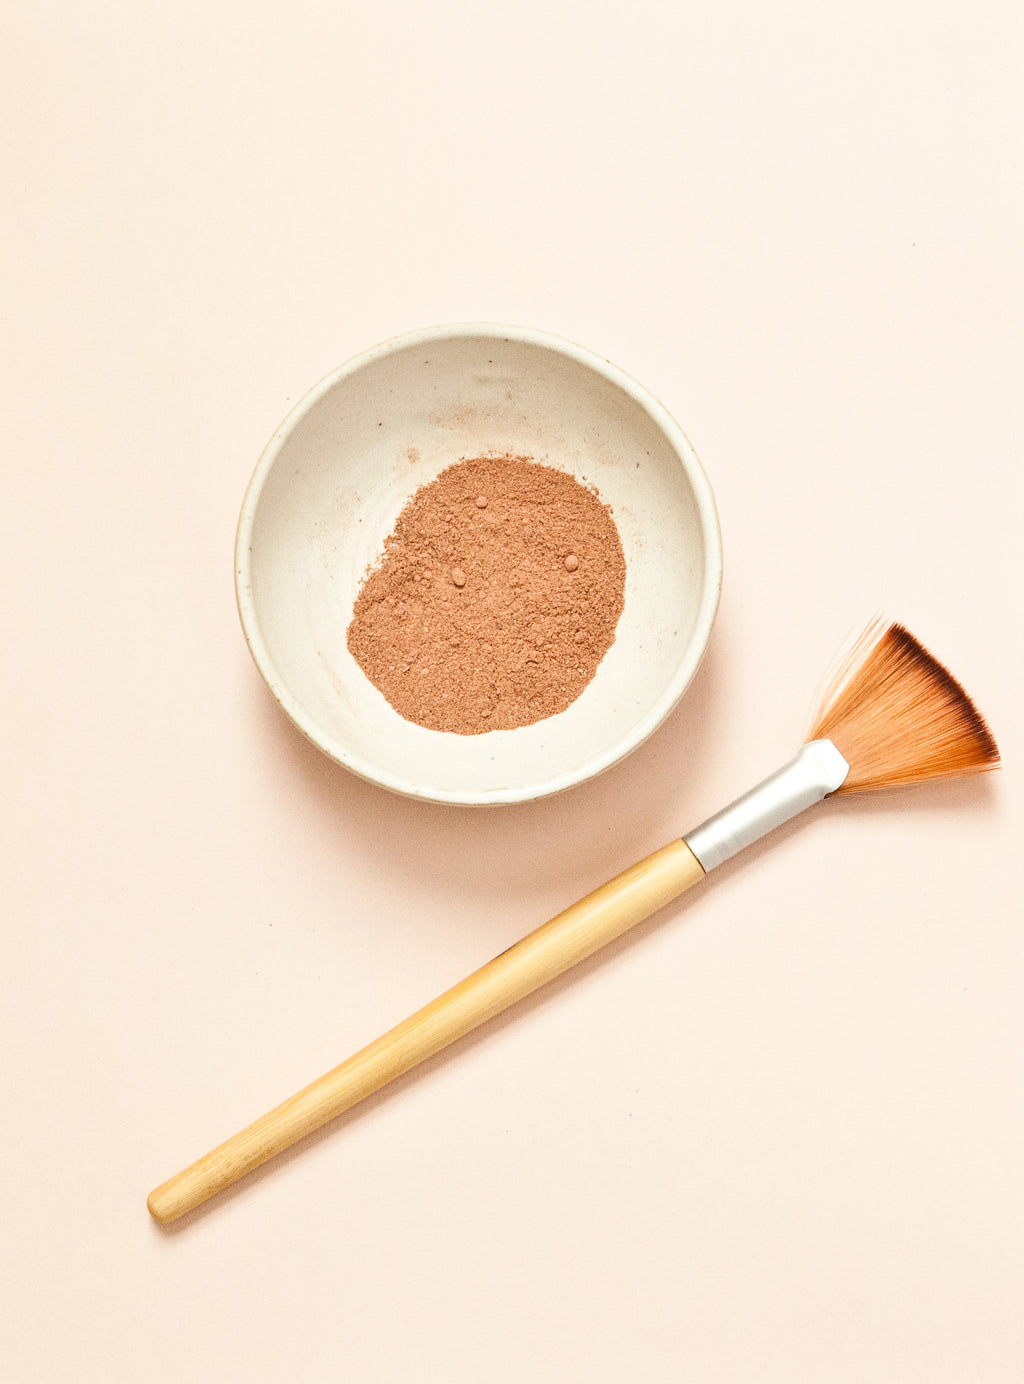 Handmade Pottery Face Mask Mixing Bowl + Eco-Friendly Mask Application Brush Set